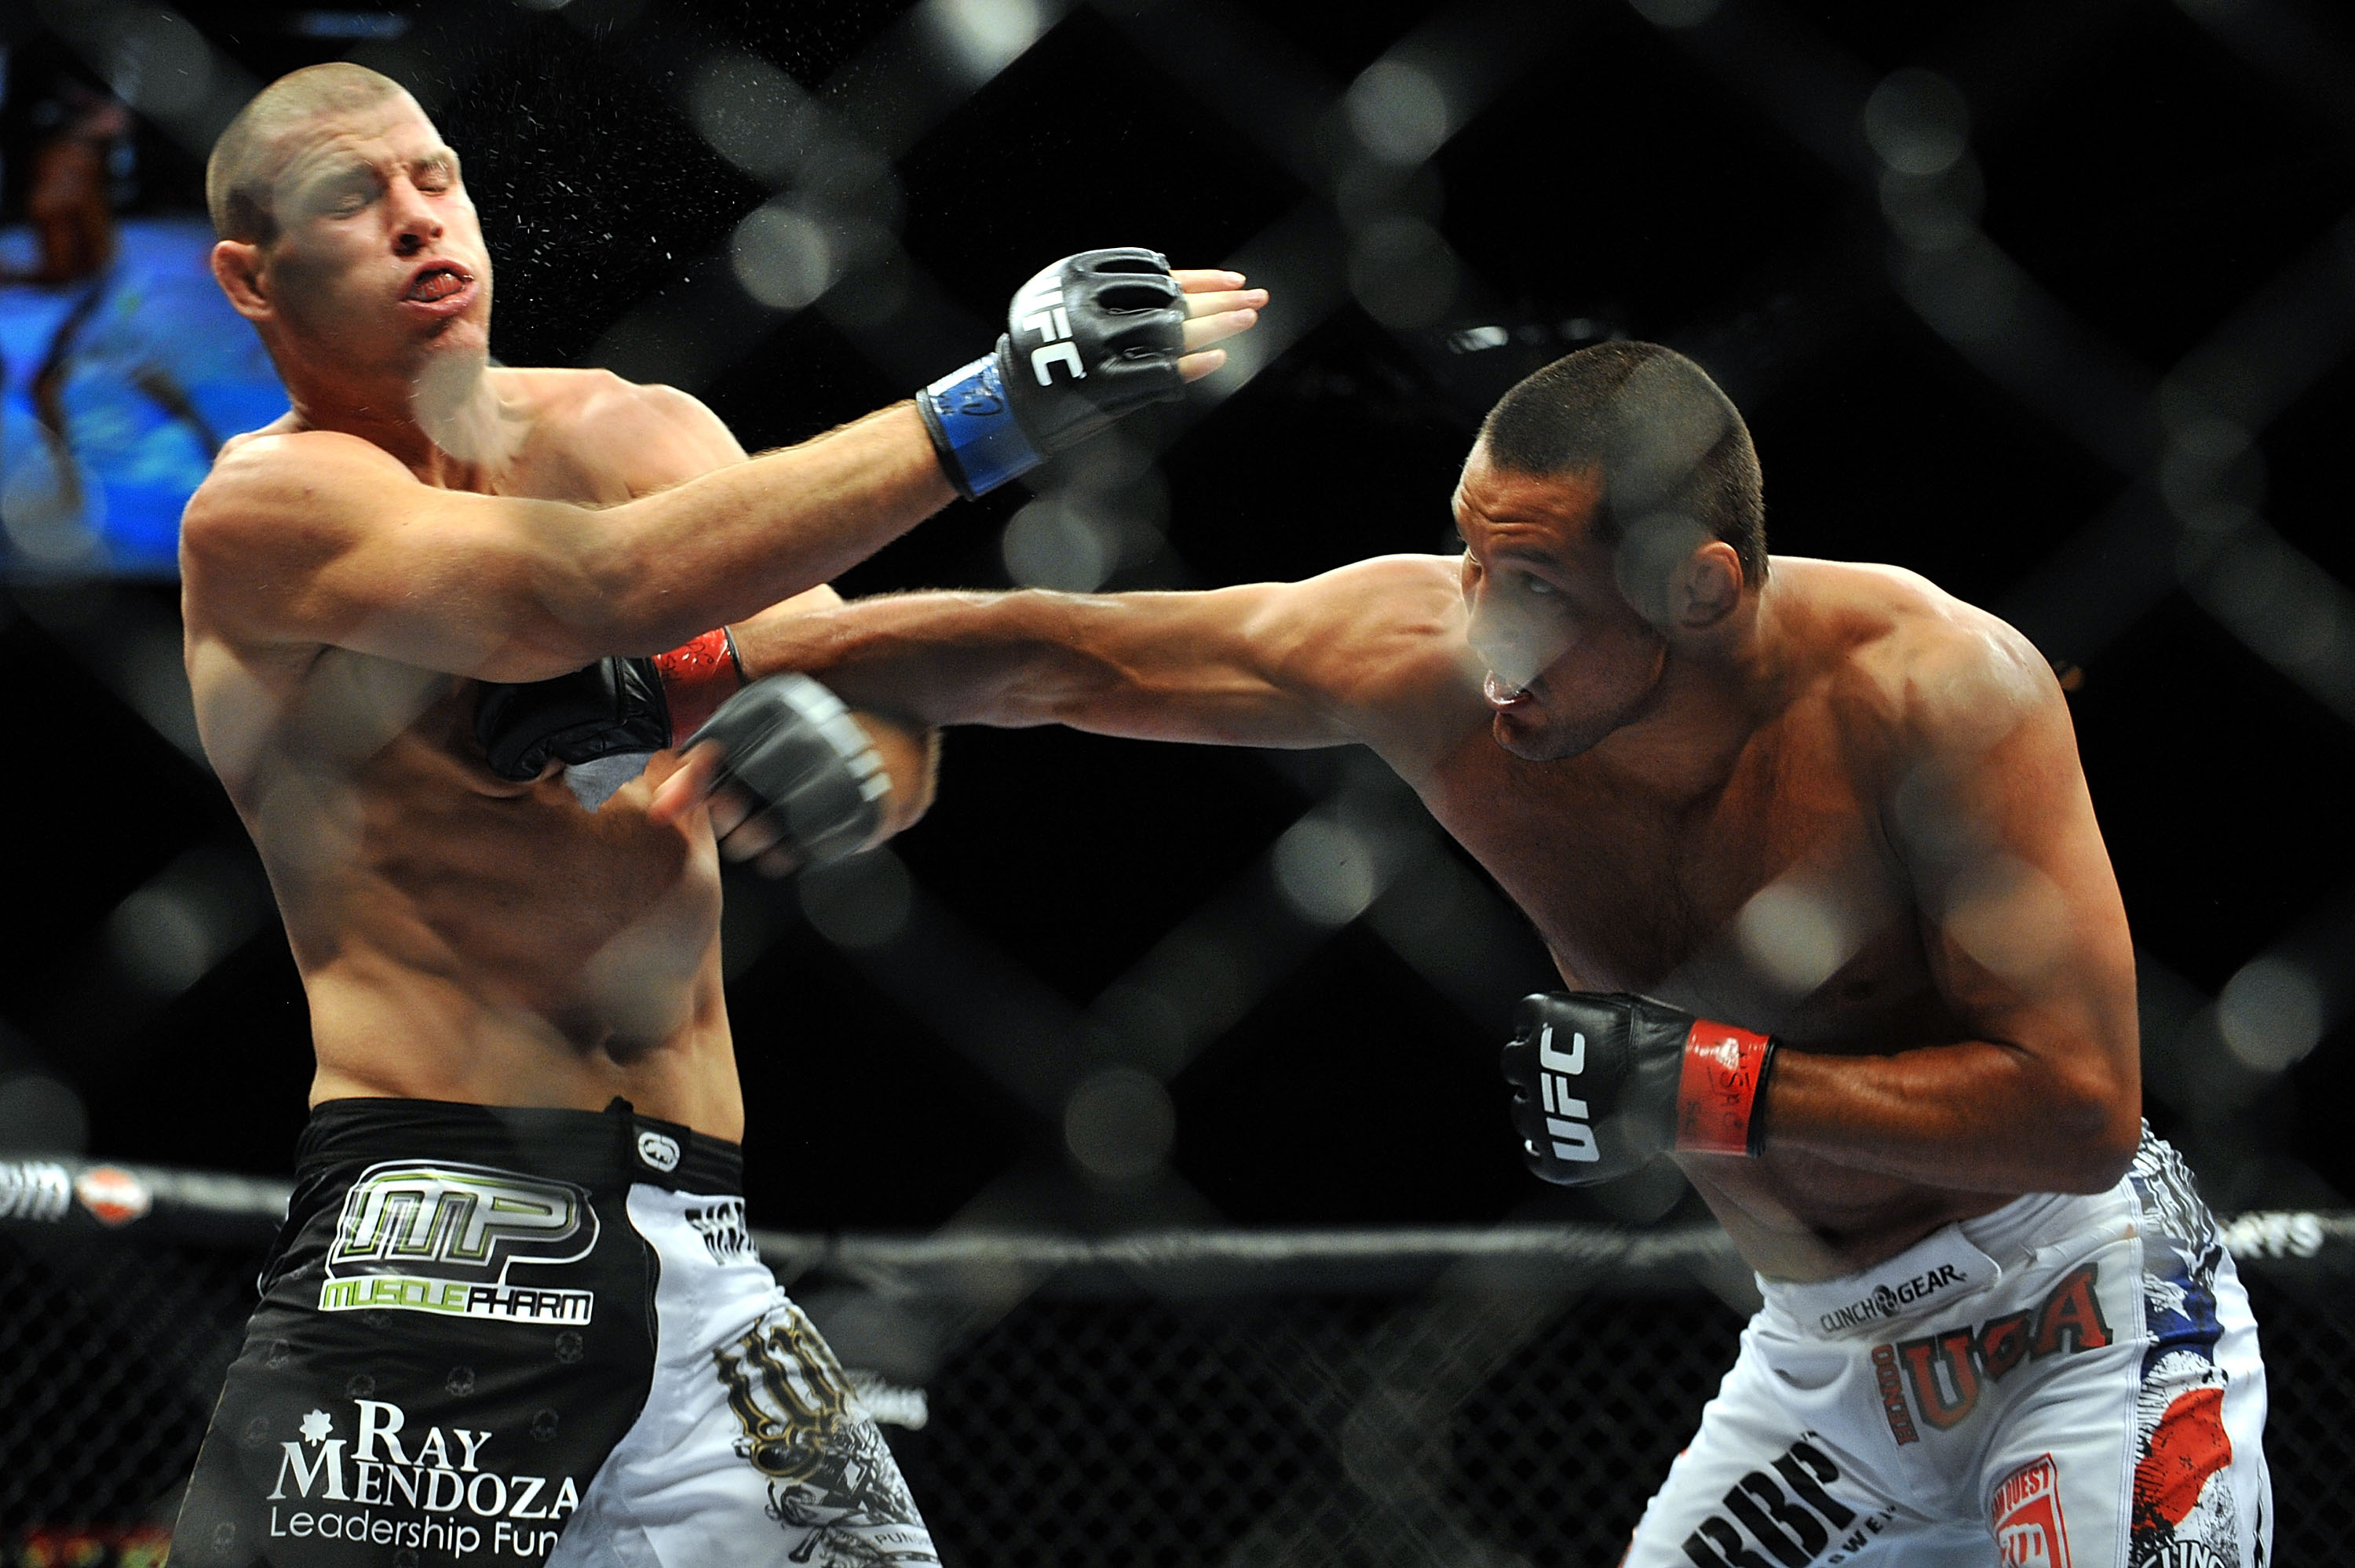 LAS VEGAS - JULY 11:  (R-L) Dan Henderson connects with a right to Mike Bisping during their middleweight bout during UFC 100 on July 11, 2009 in Las Vegas, Nevada.  (Photo by Jon Kopaloff/Getty Images)